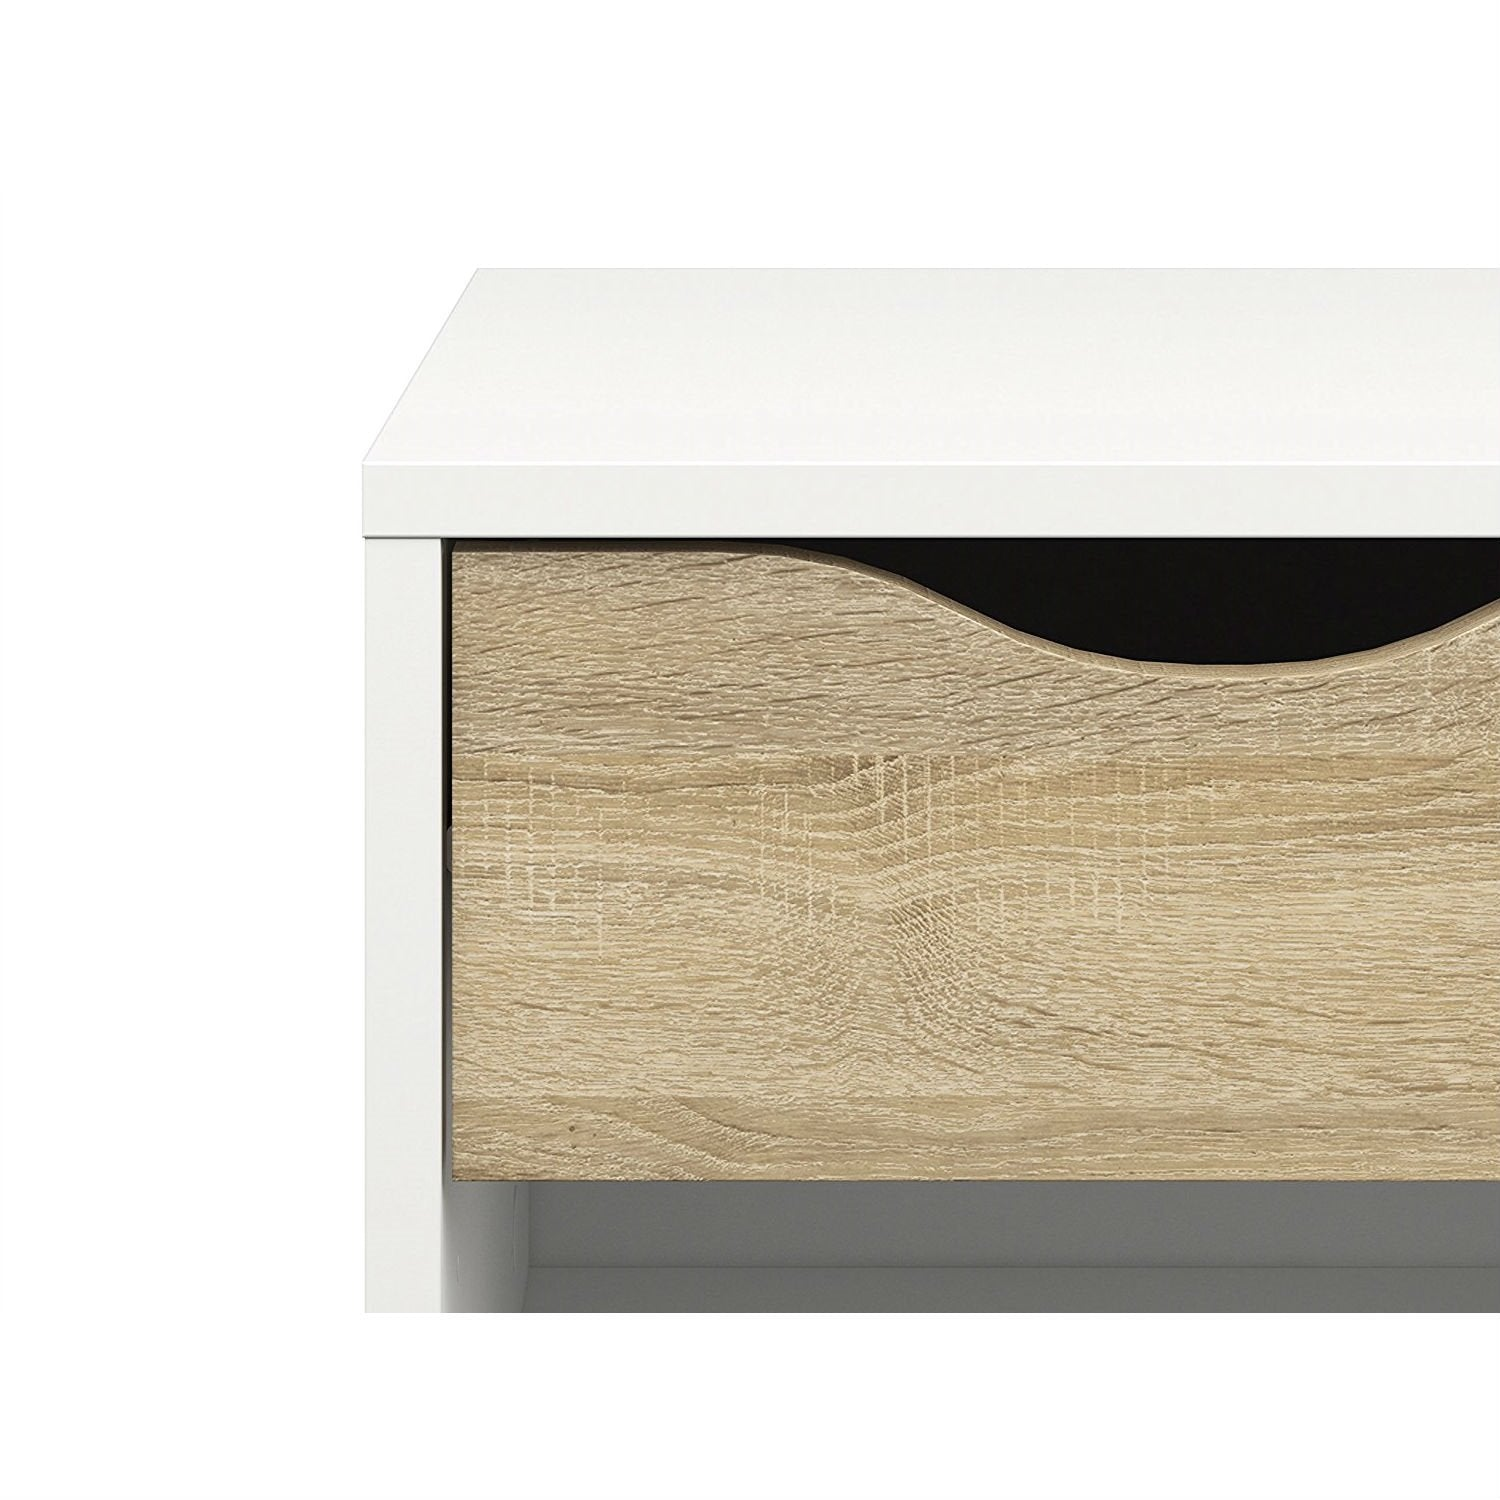 Modern Mid Century Style End Table Nightstand in White & Oak Finish